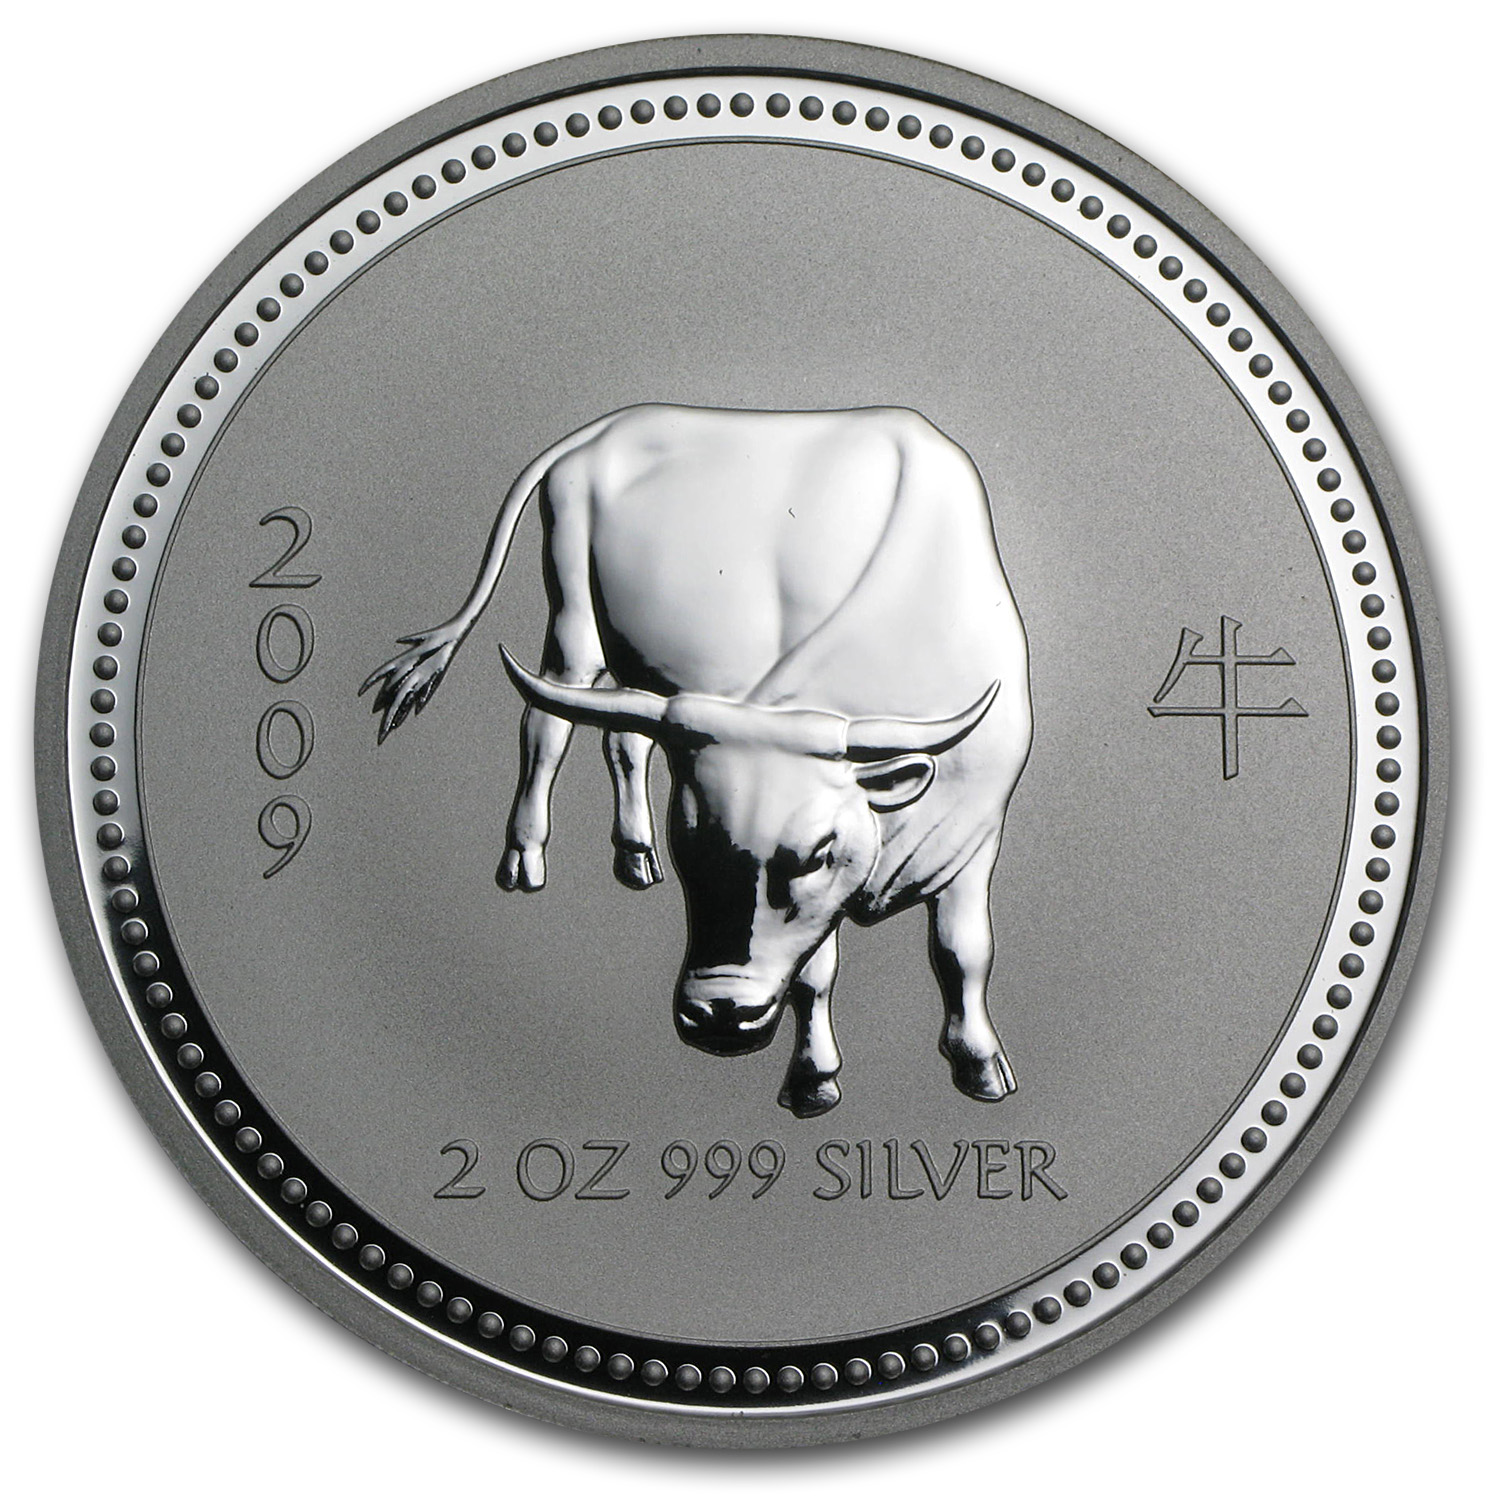 2009 Australia 2 oz Silver Year of the Ox BU (Series I)